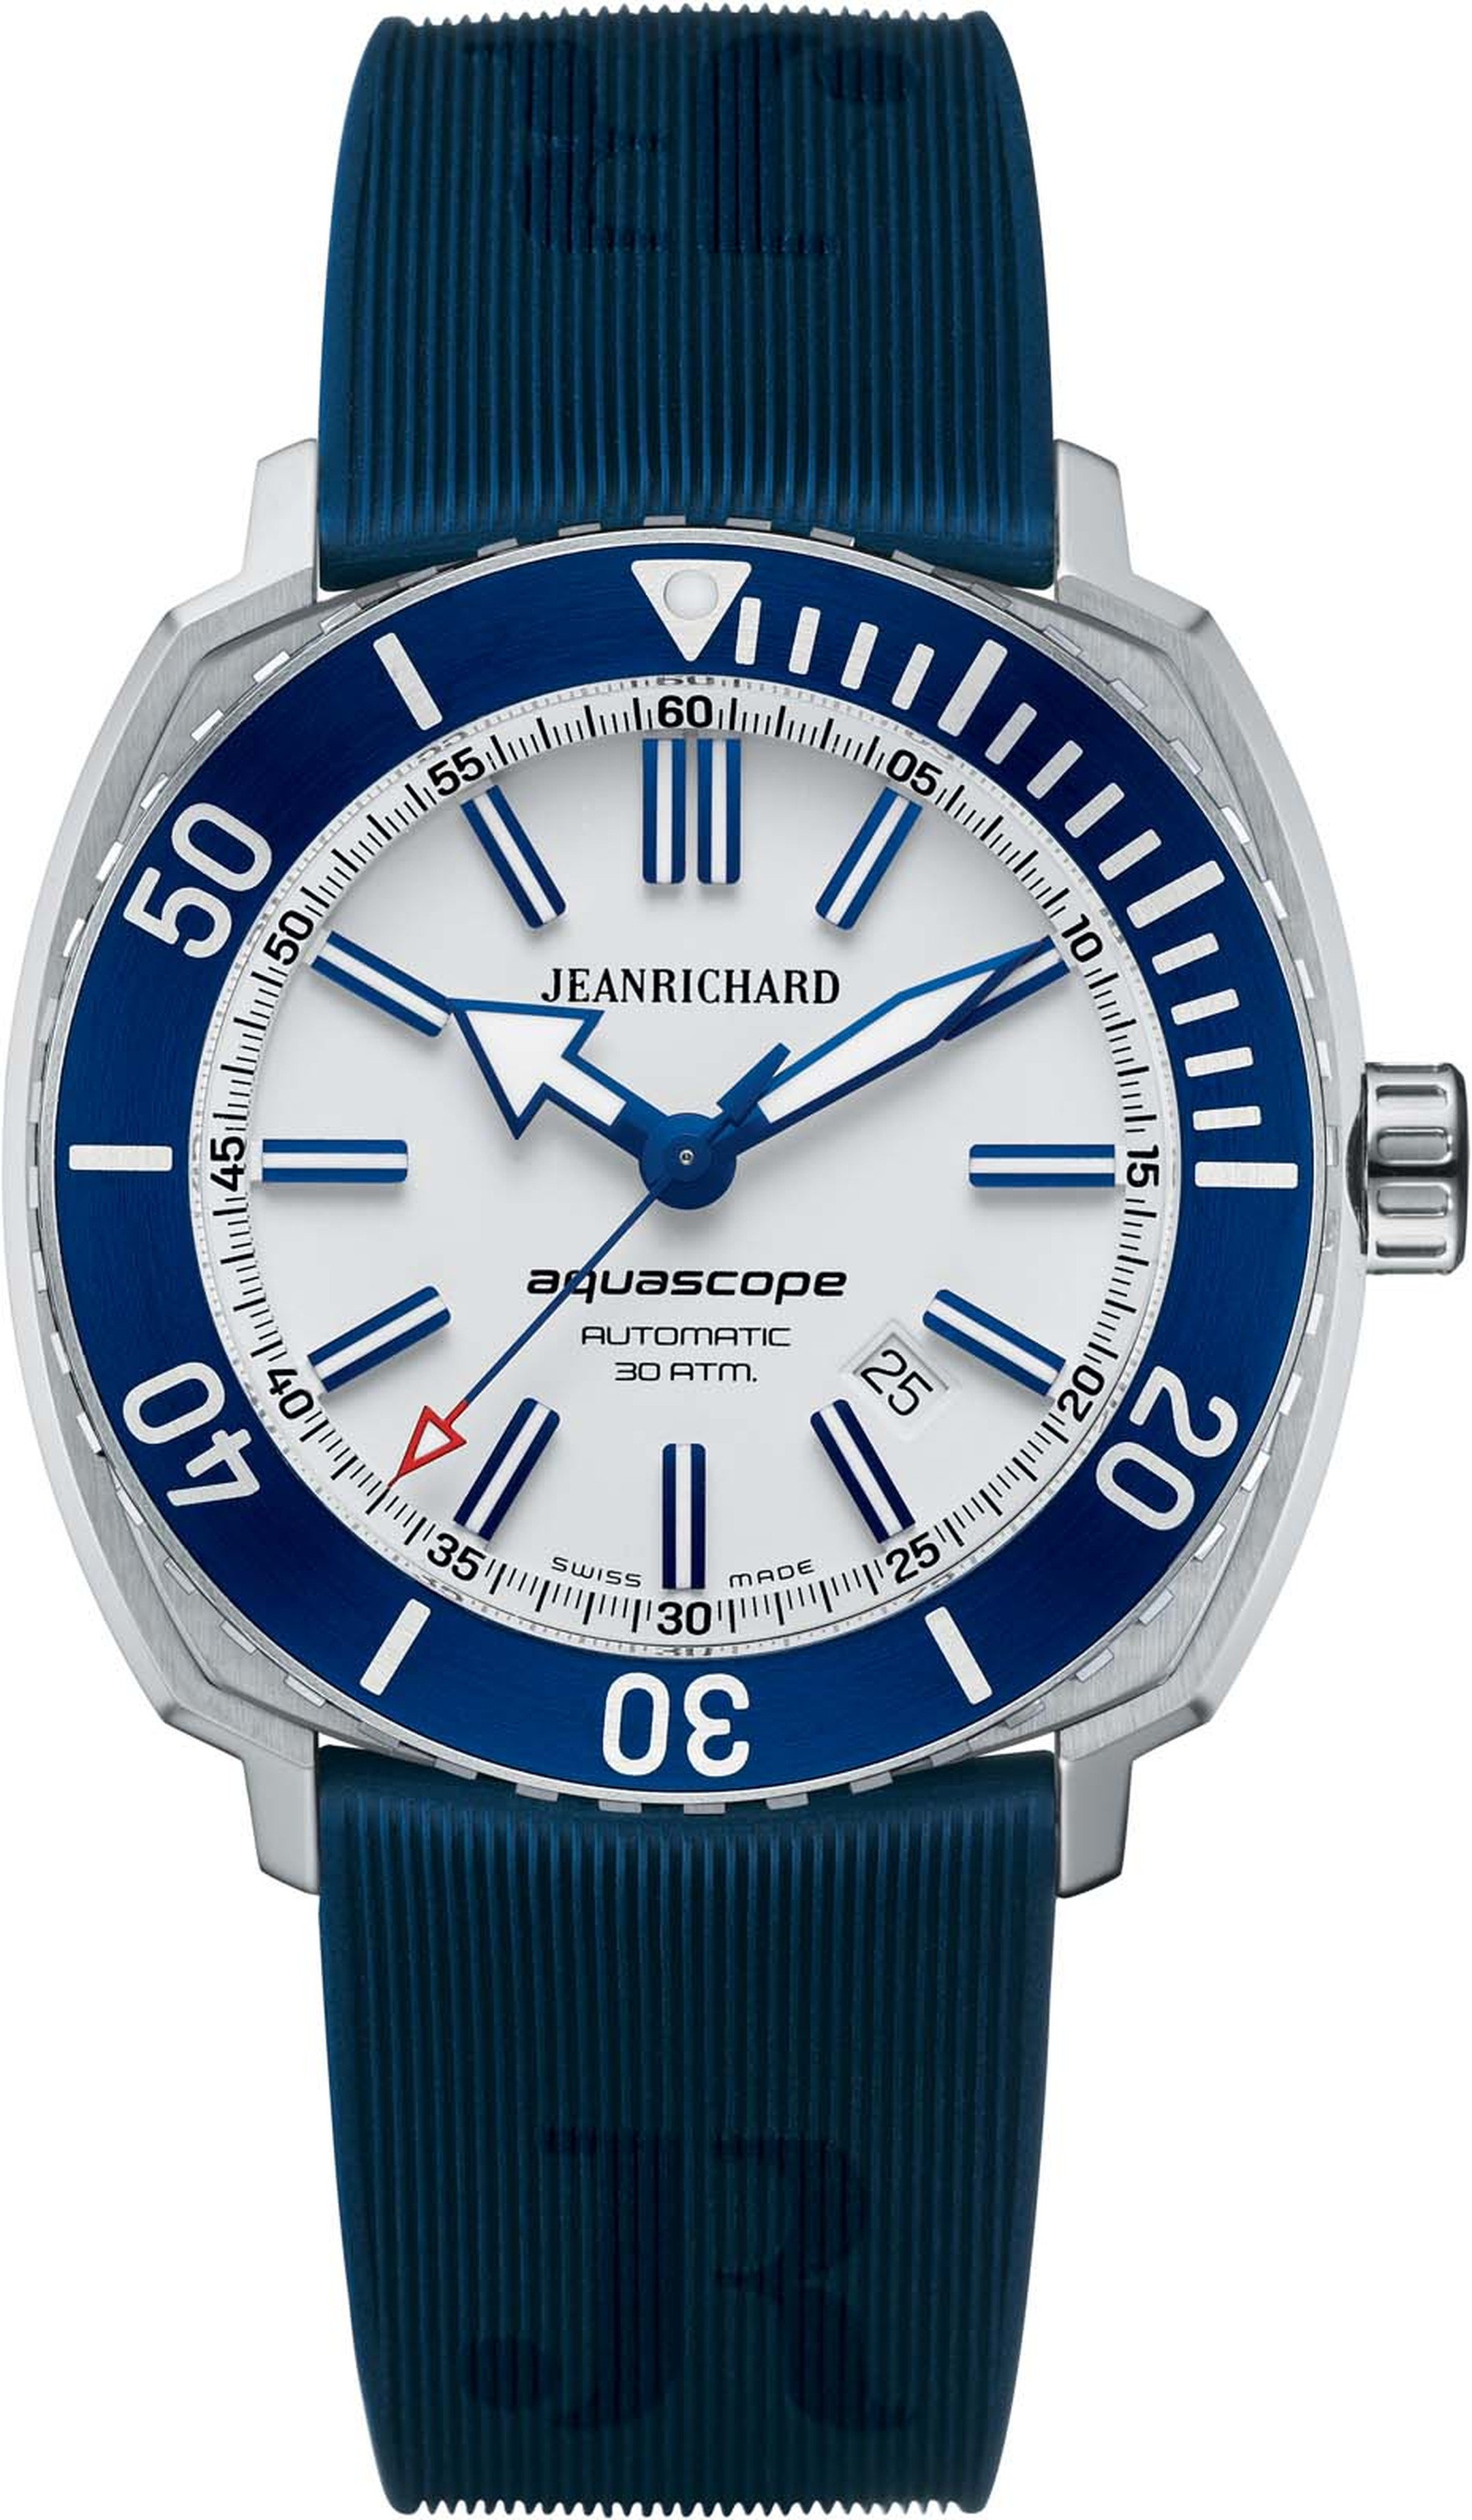 "JeanRichard 44mm Aquascope watch with a new ""rubbergator"" strap, with a deeply-set white dial with applied indices and blue bezel."